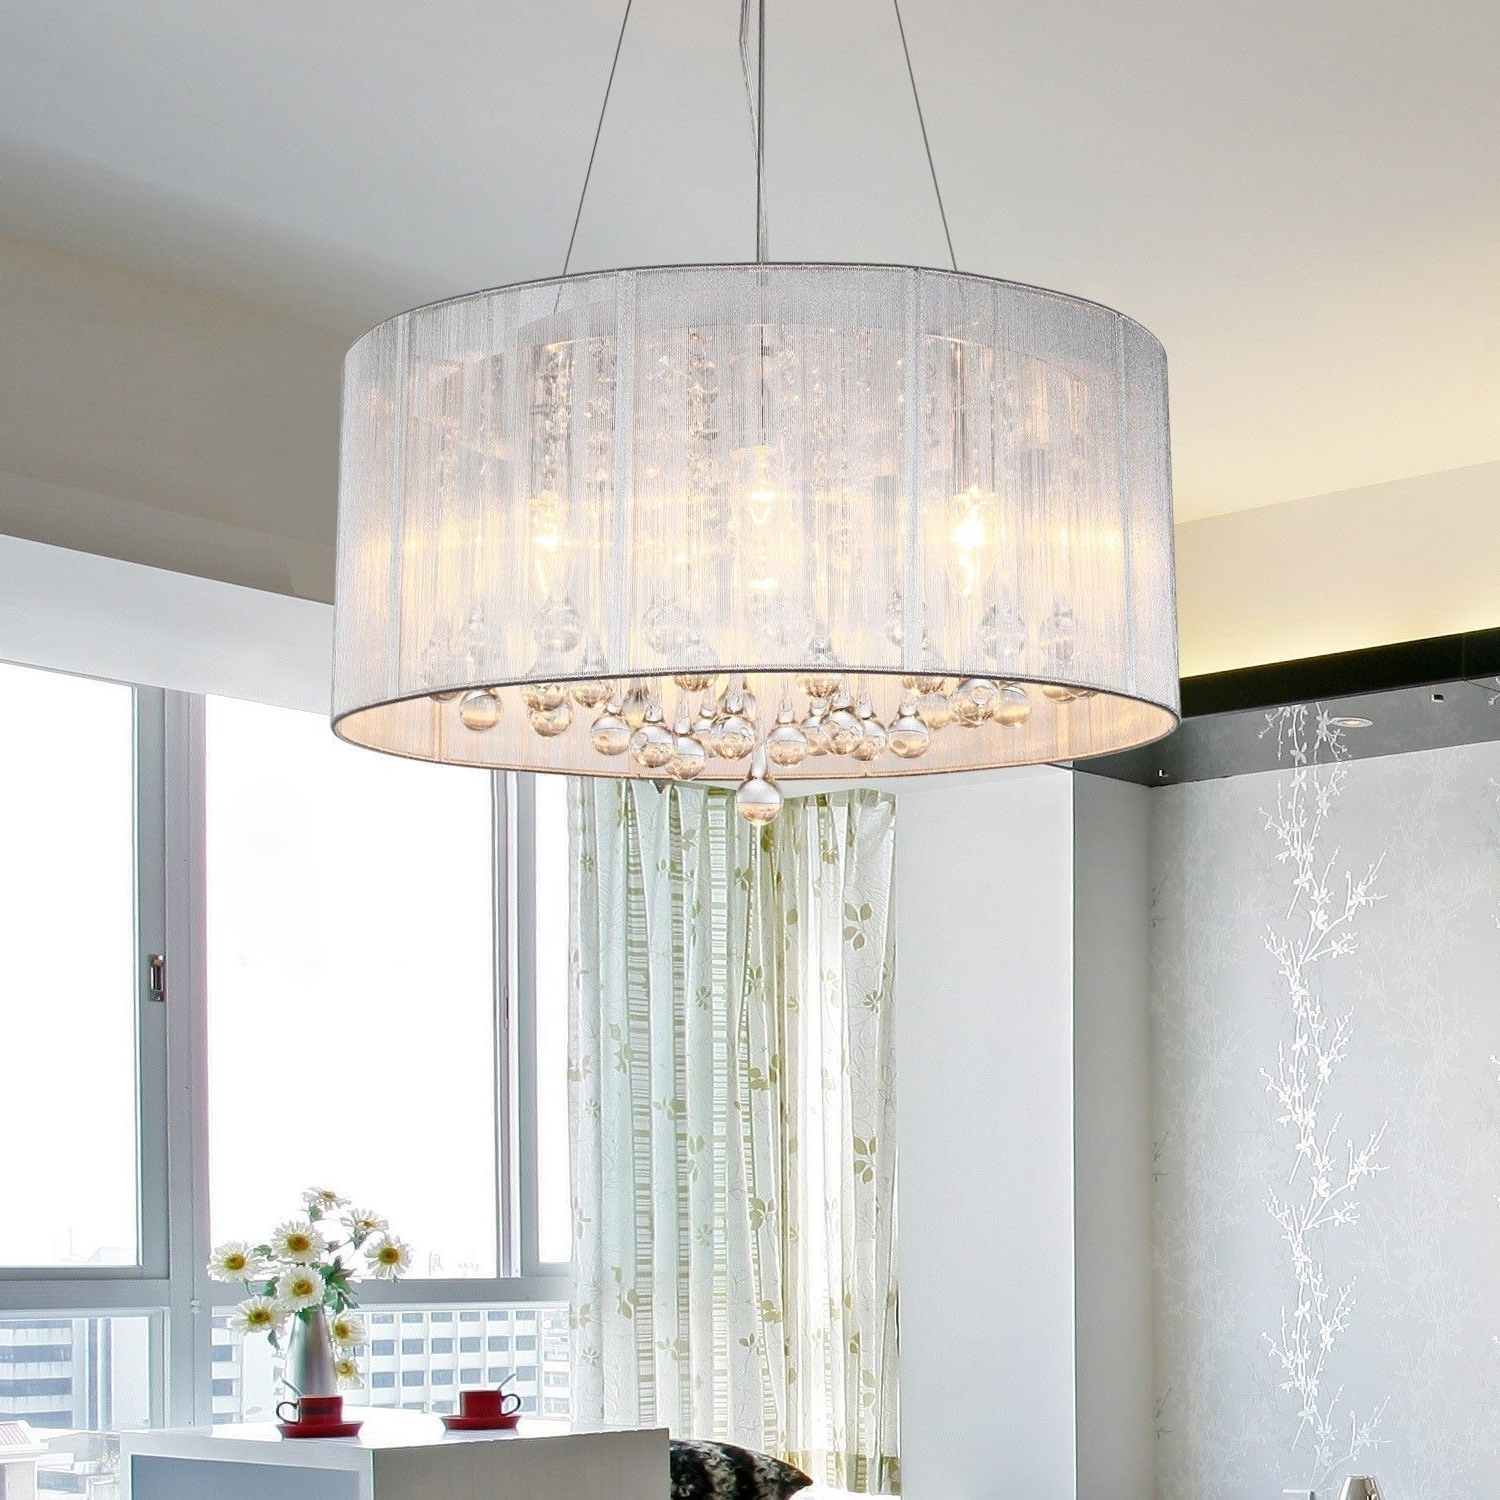 2017 Lampshades For Chandeliers Intended For Awesome Lamp Shades For Chandeliers Chandelier From The Elegant (View 1 of 15)